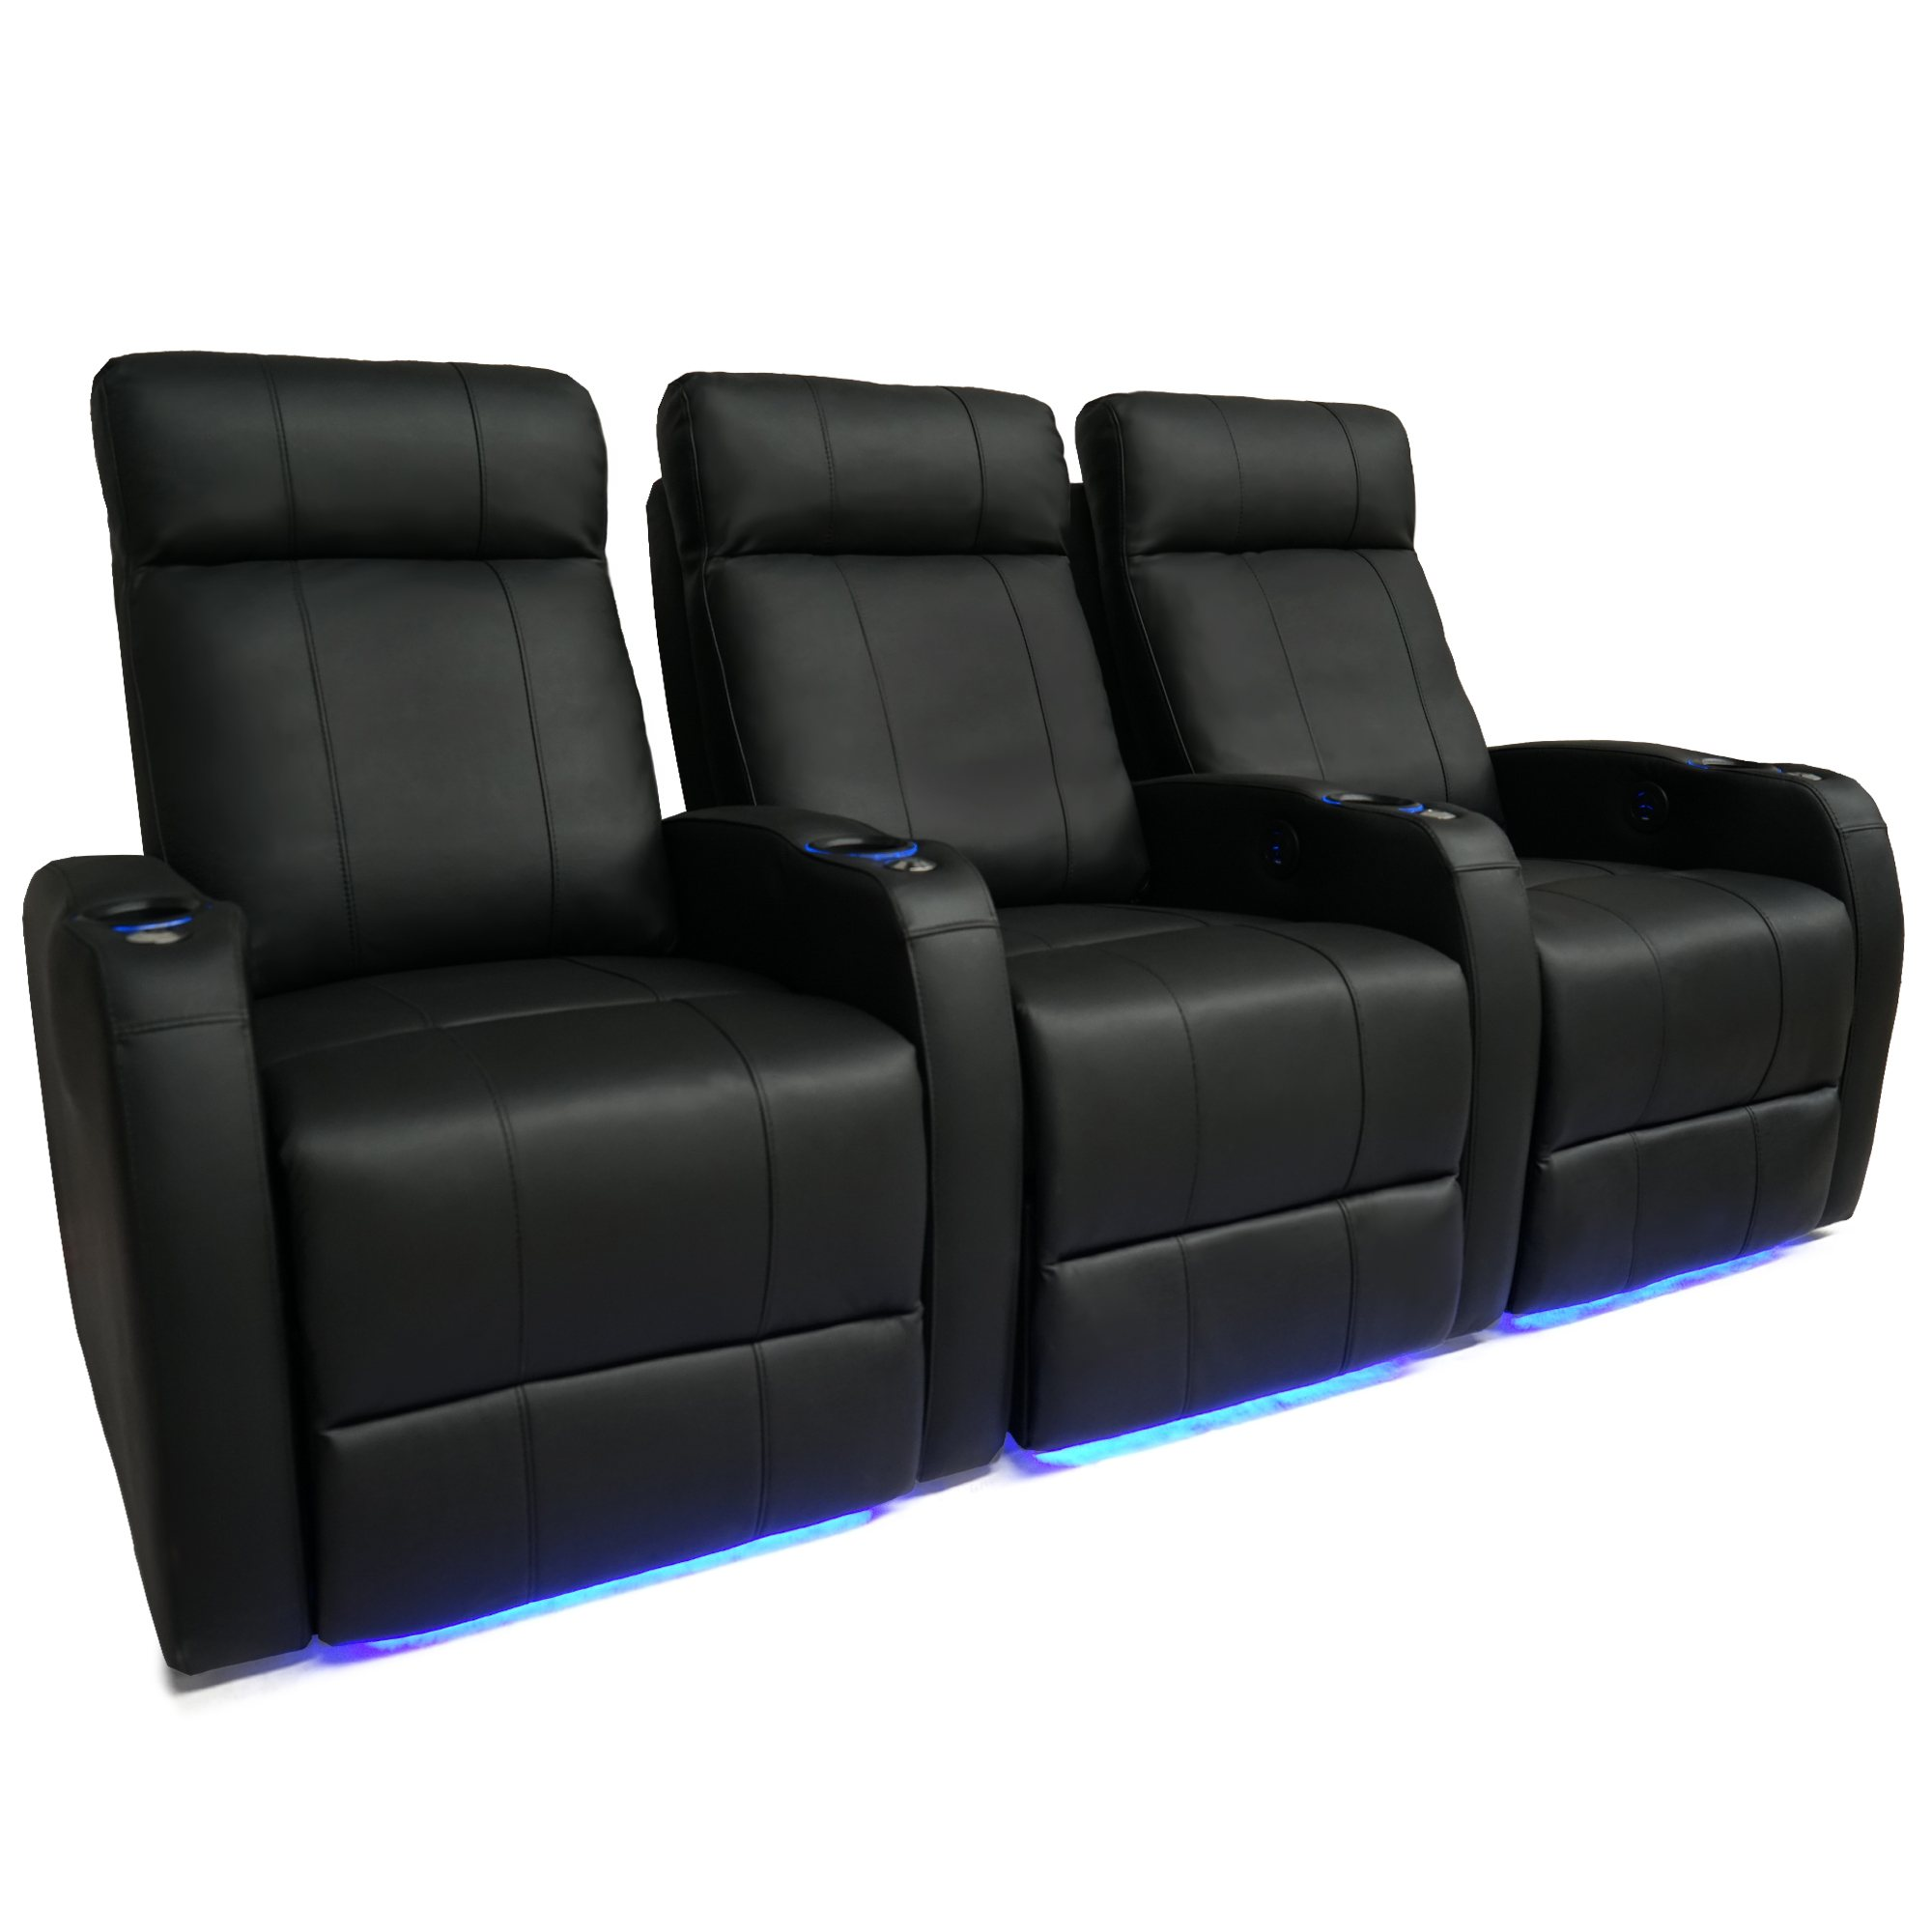 Sofa Bed Home Theater: Valencia Syracuse Home Theater Seating